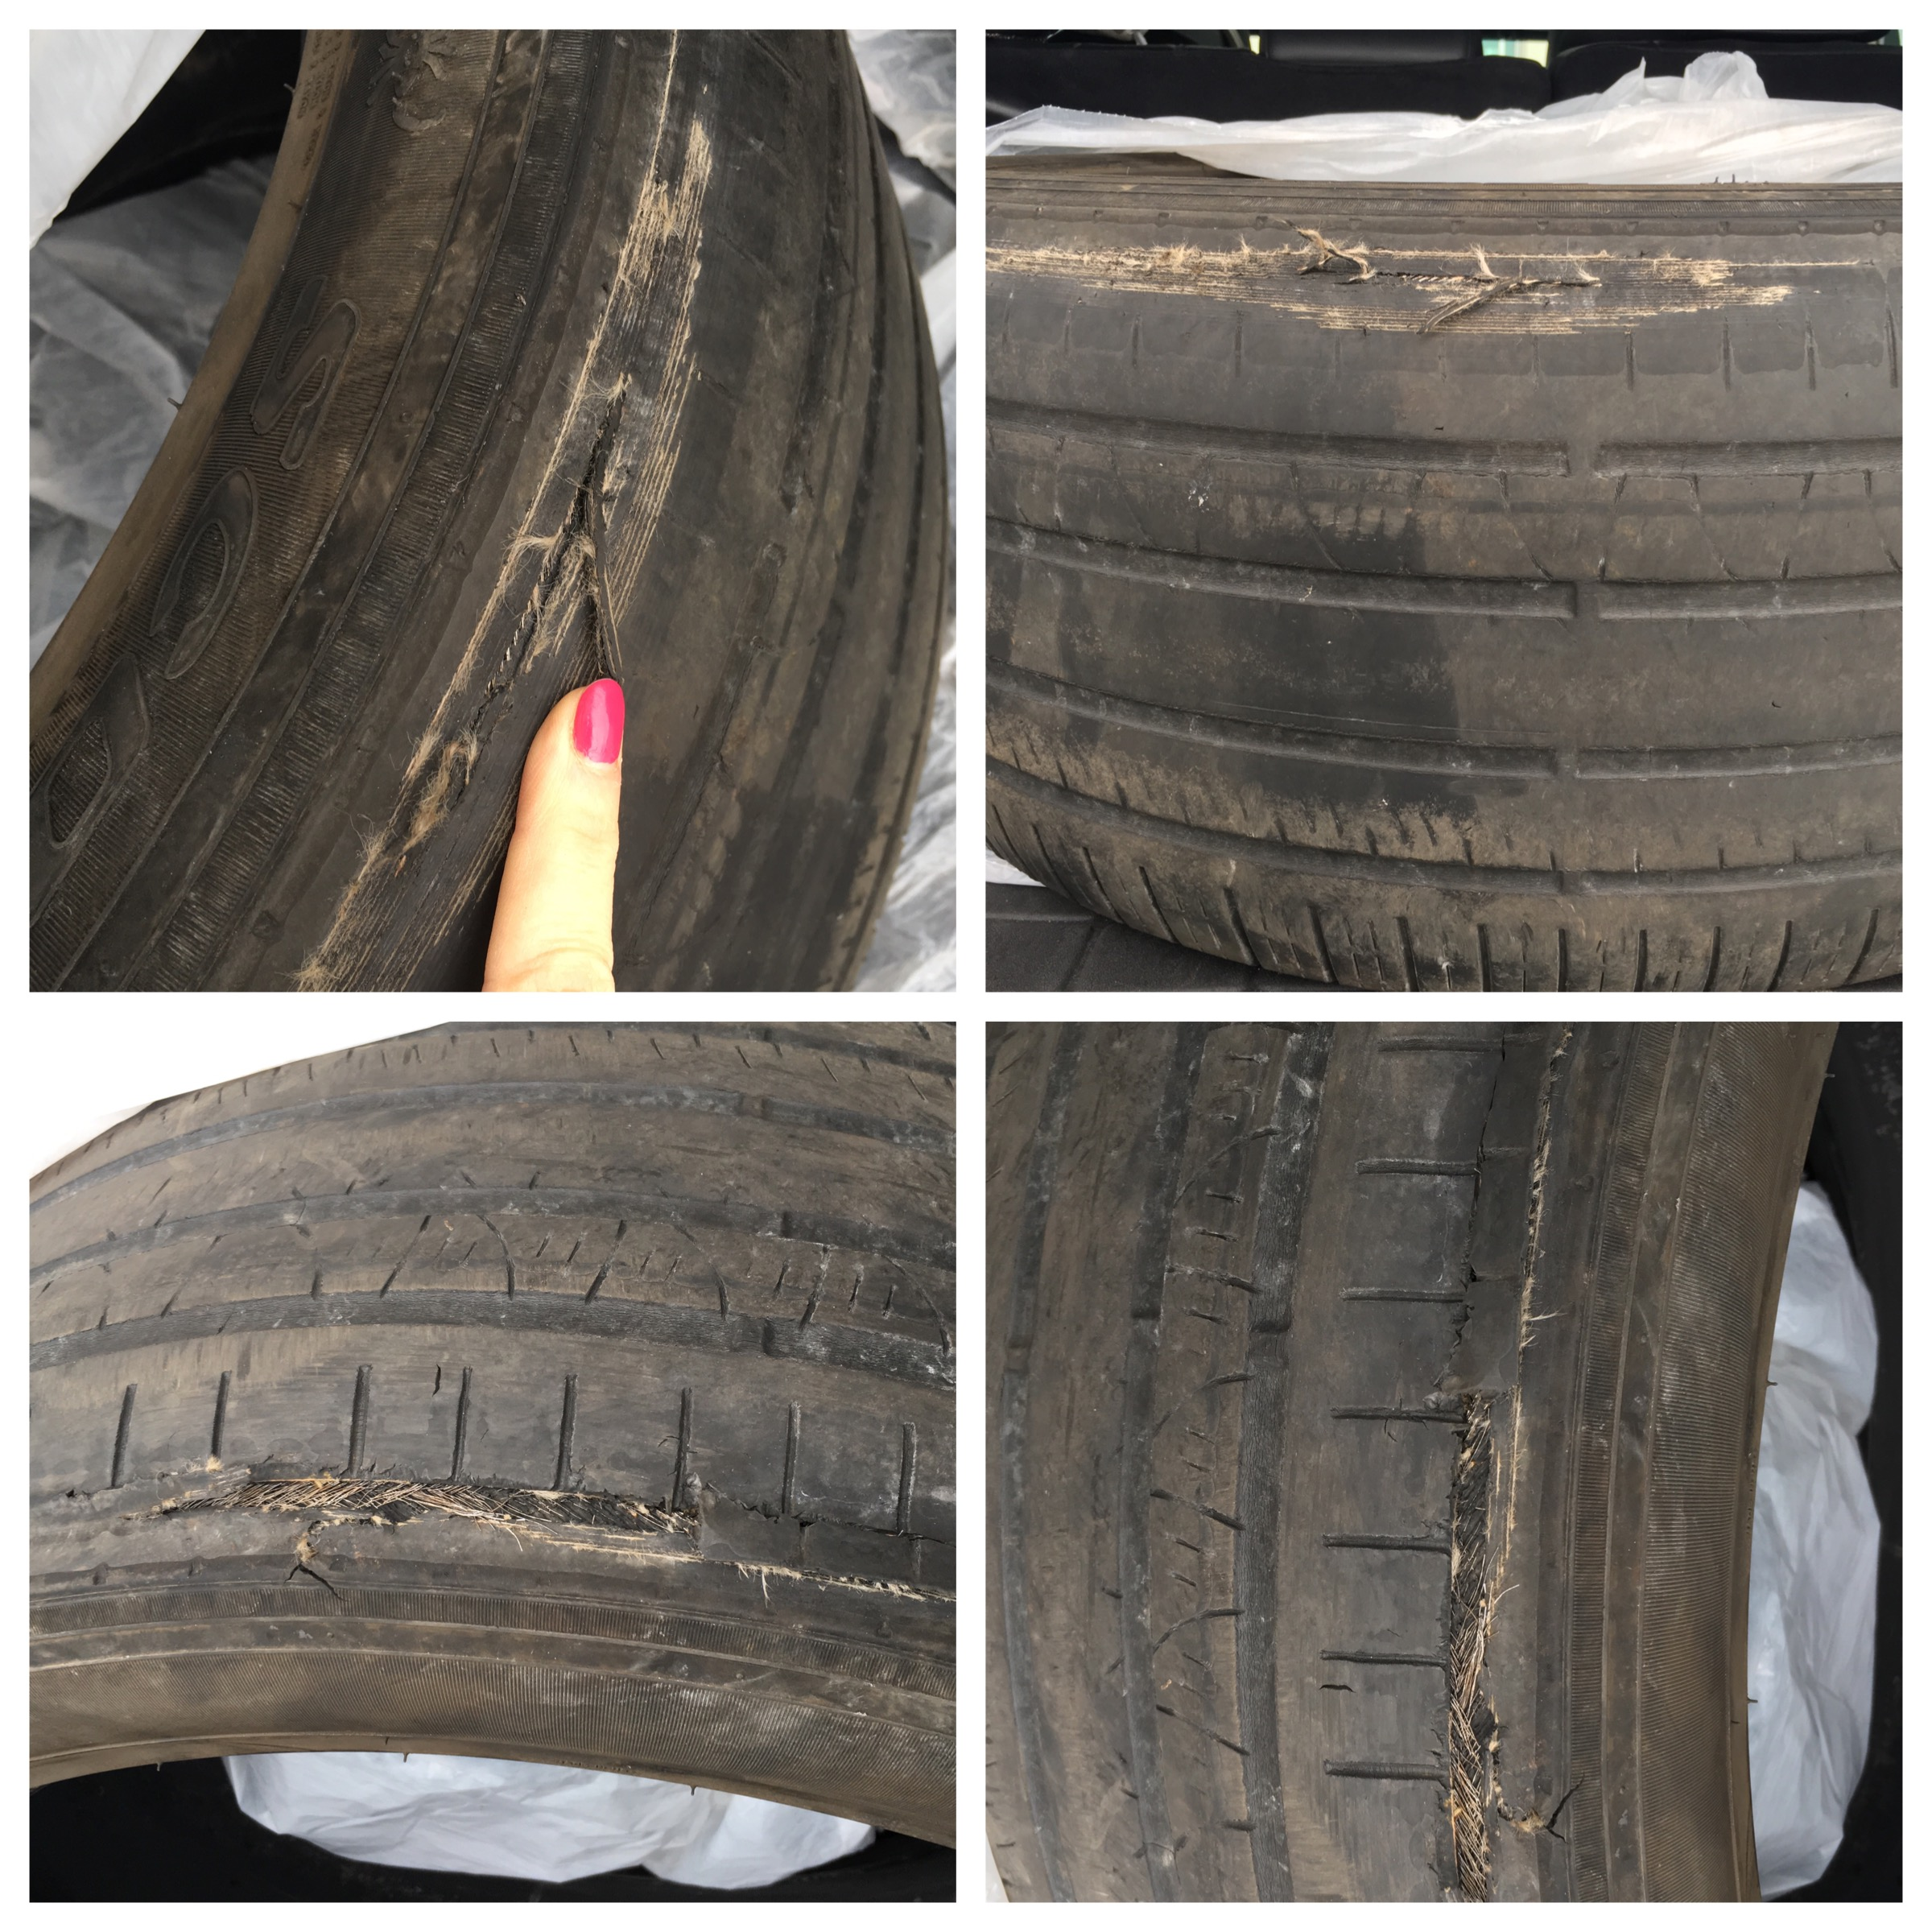 Tire damages.